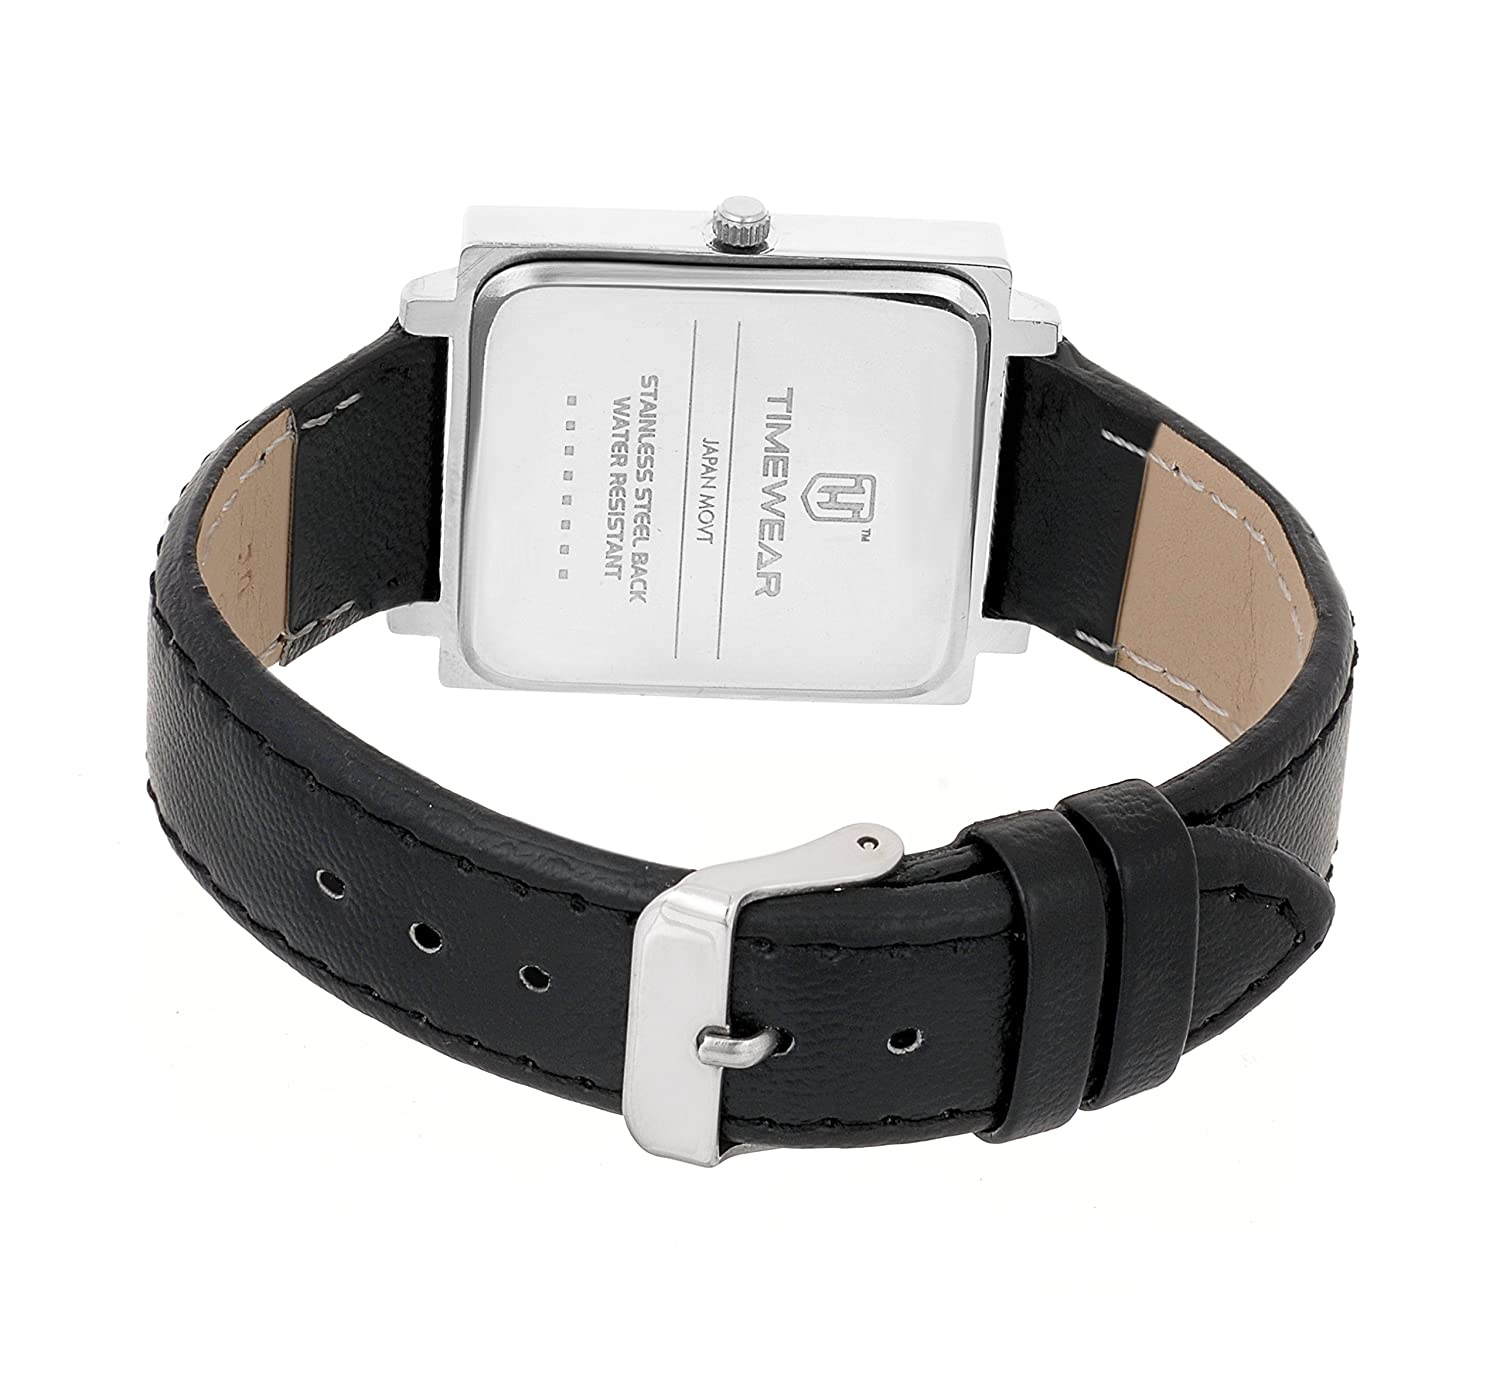 john johnlewis watches com at g black buygucci gucci watch leather timeless rsp online main unisex strap pdp